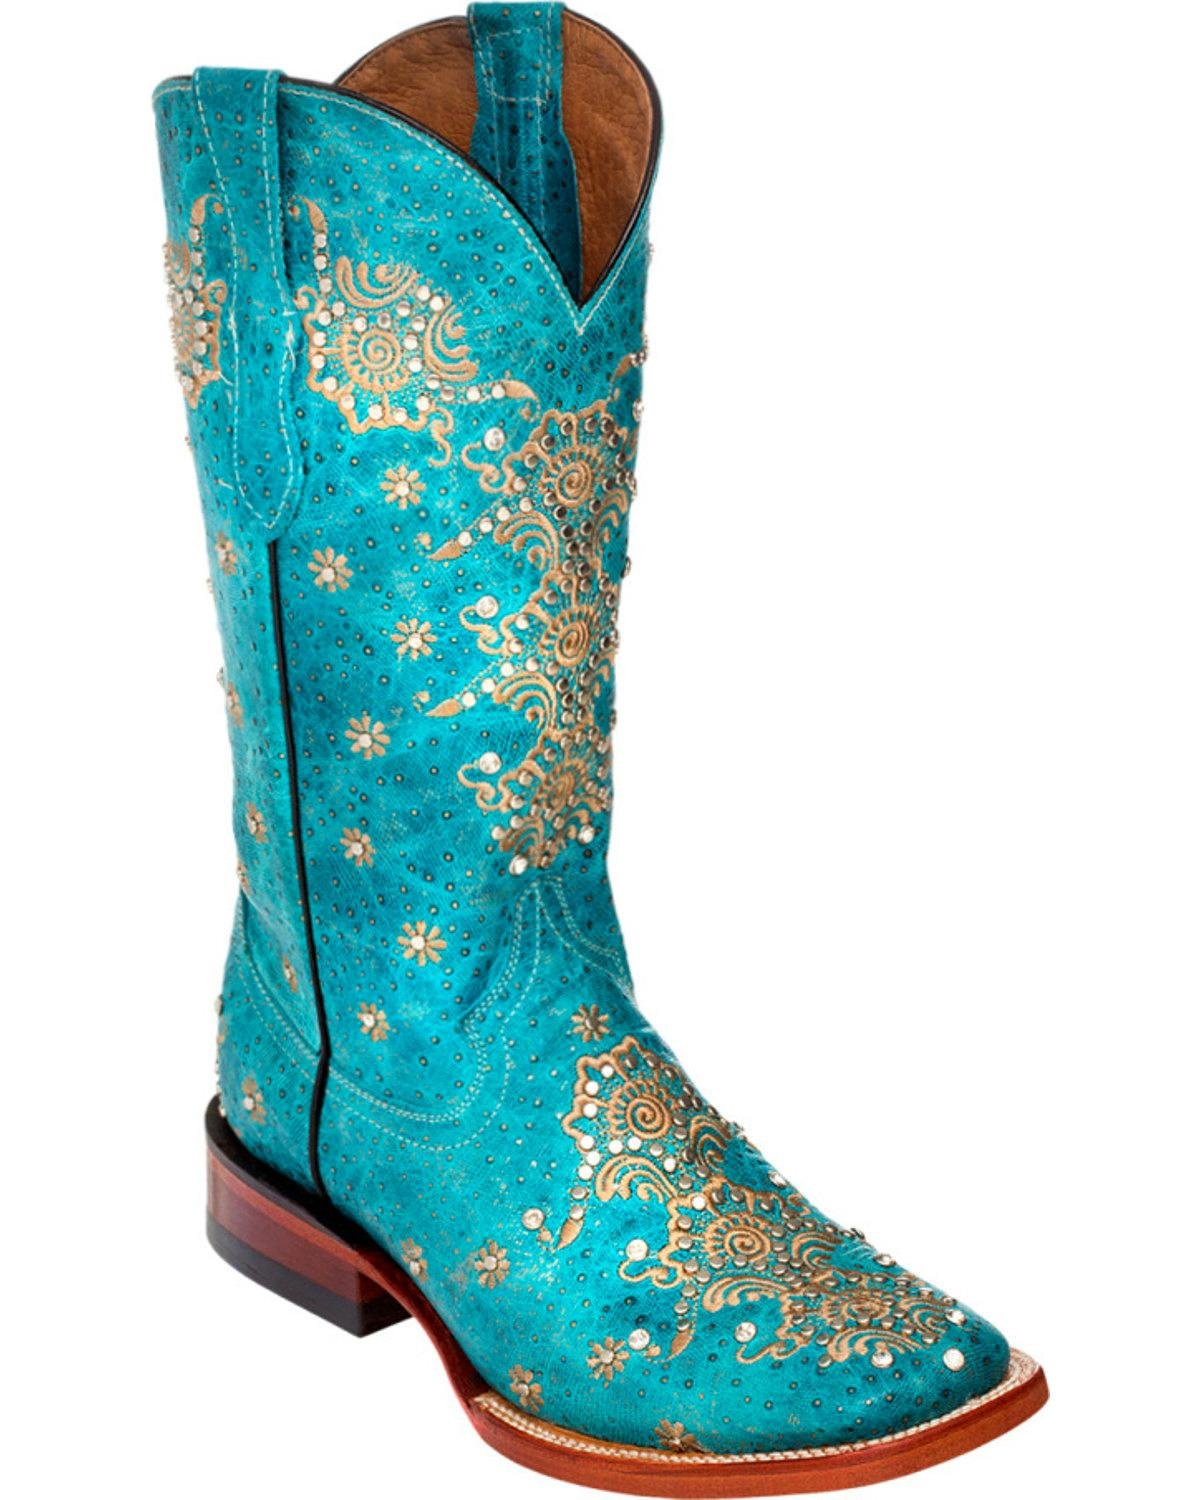 Ferrini Women's Turquoise Country Lace Cowgirl Boot Square Toe - 8289350 B01DW5BRQU 7.5 M US|Turquoise